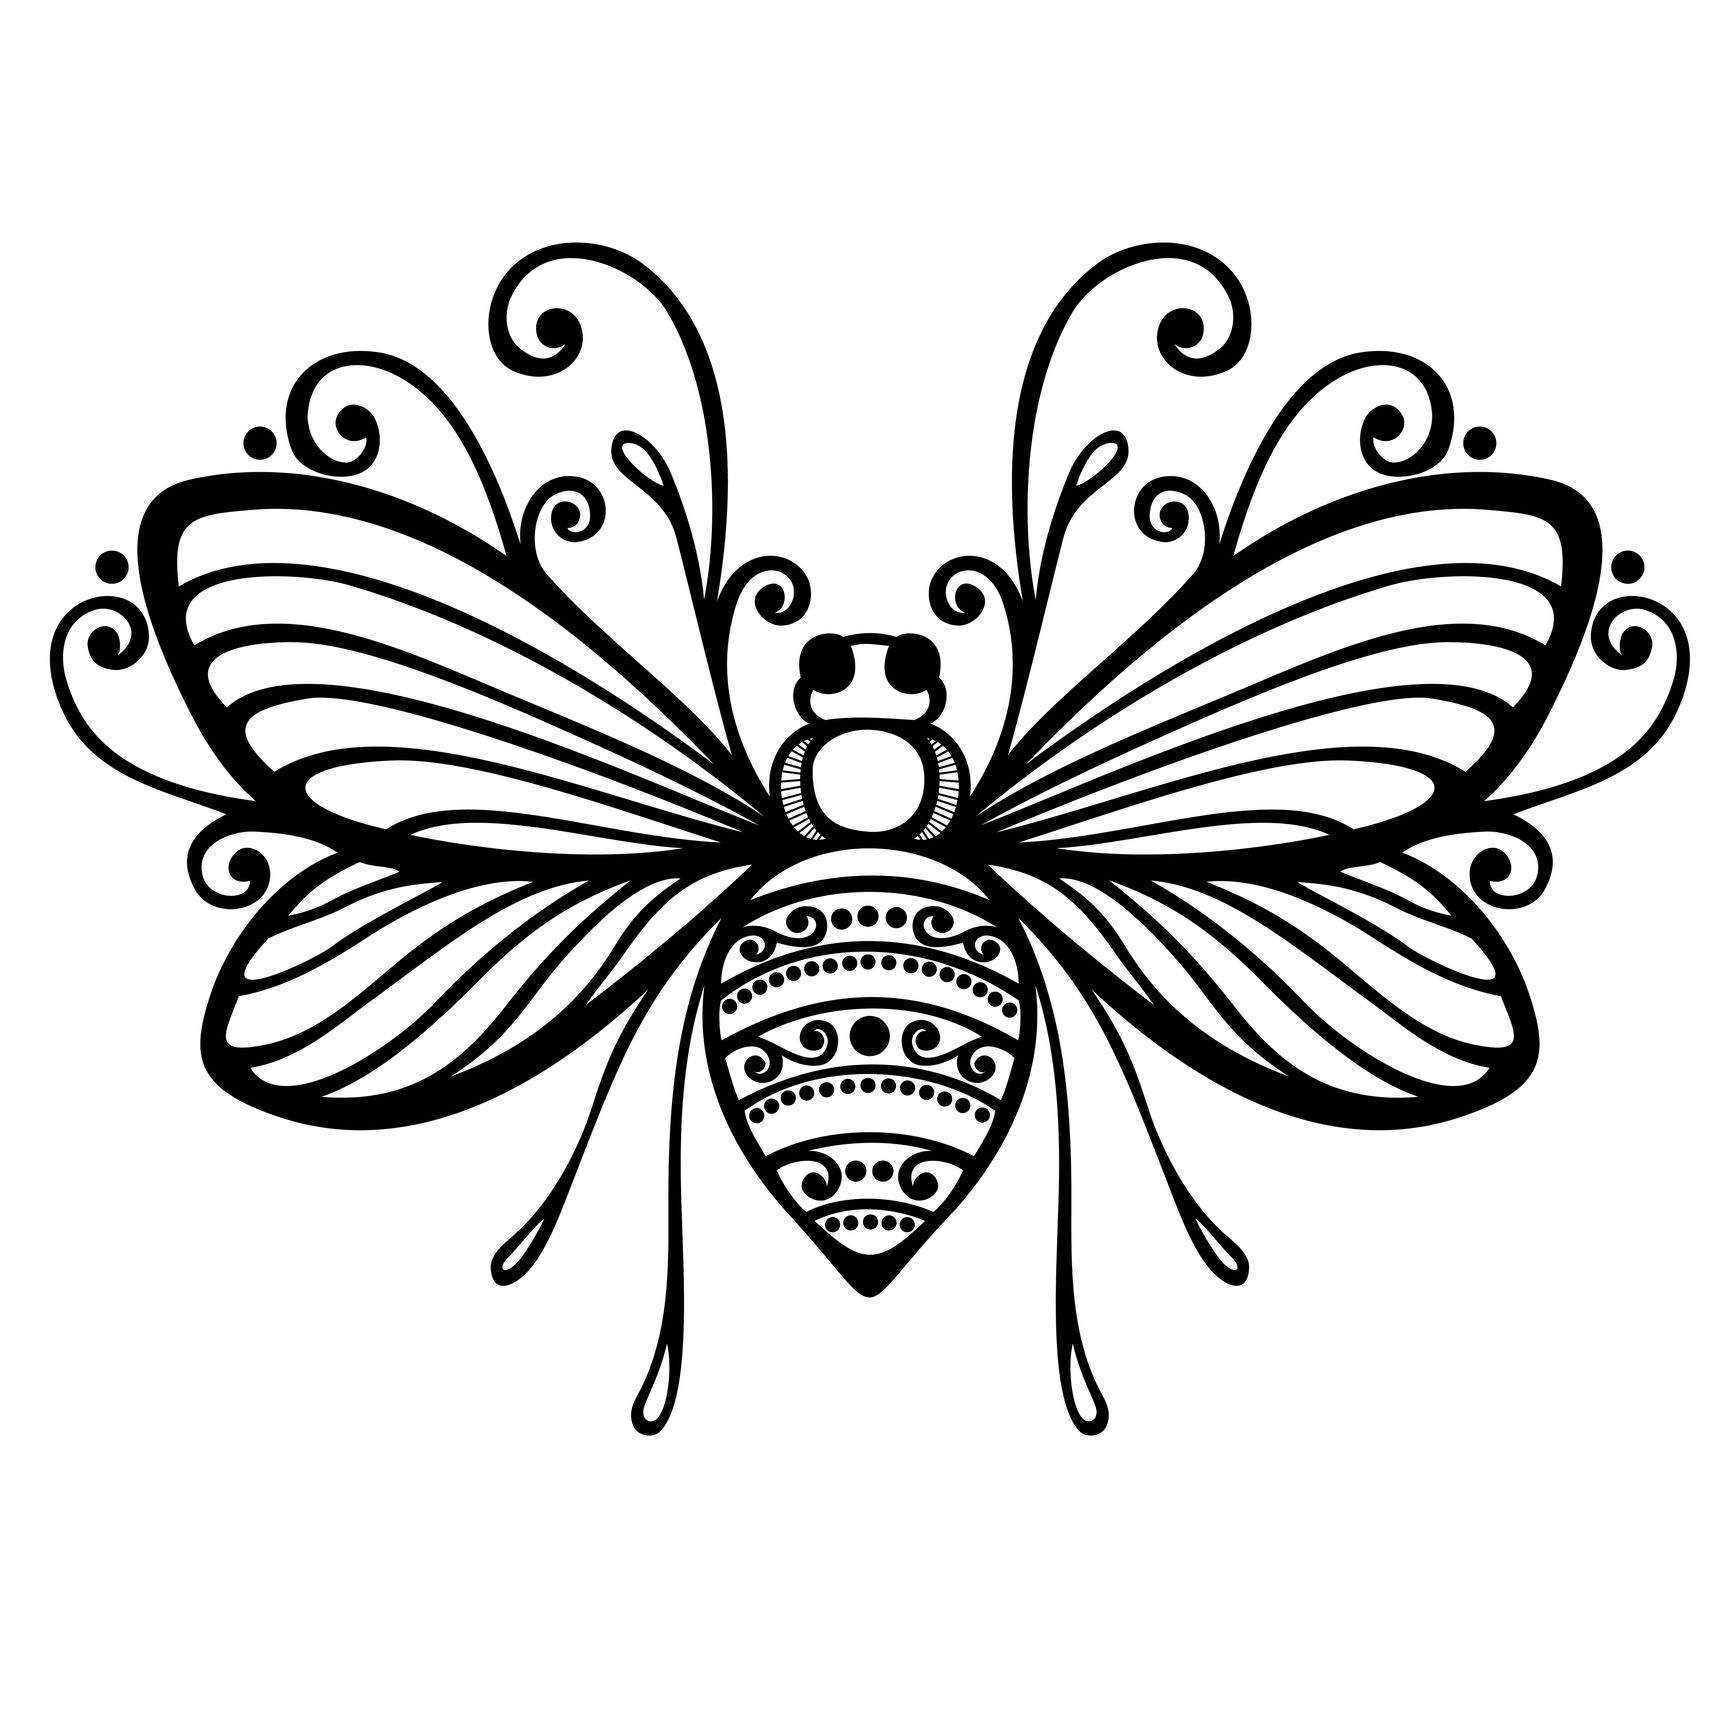 Cute Bee Tattoos Meanings Symbolism